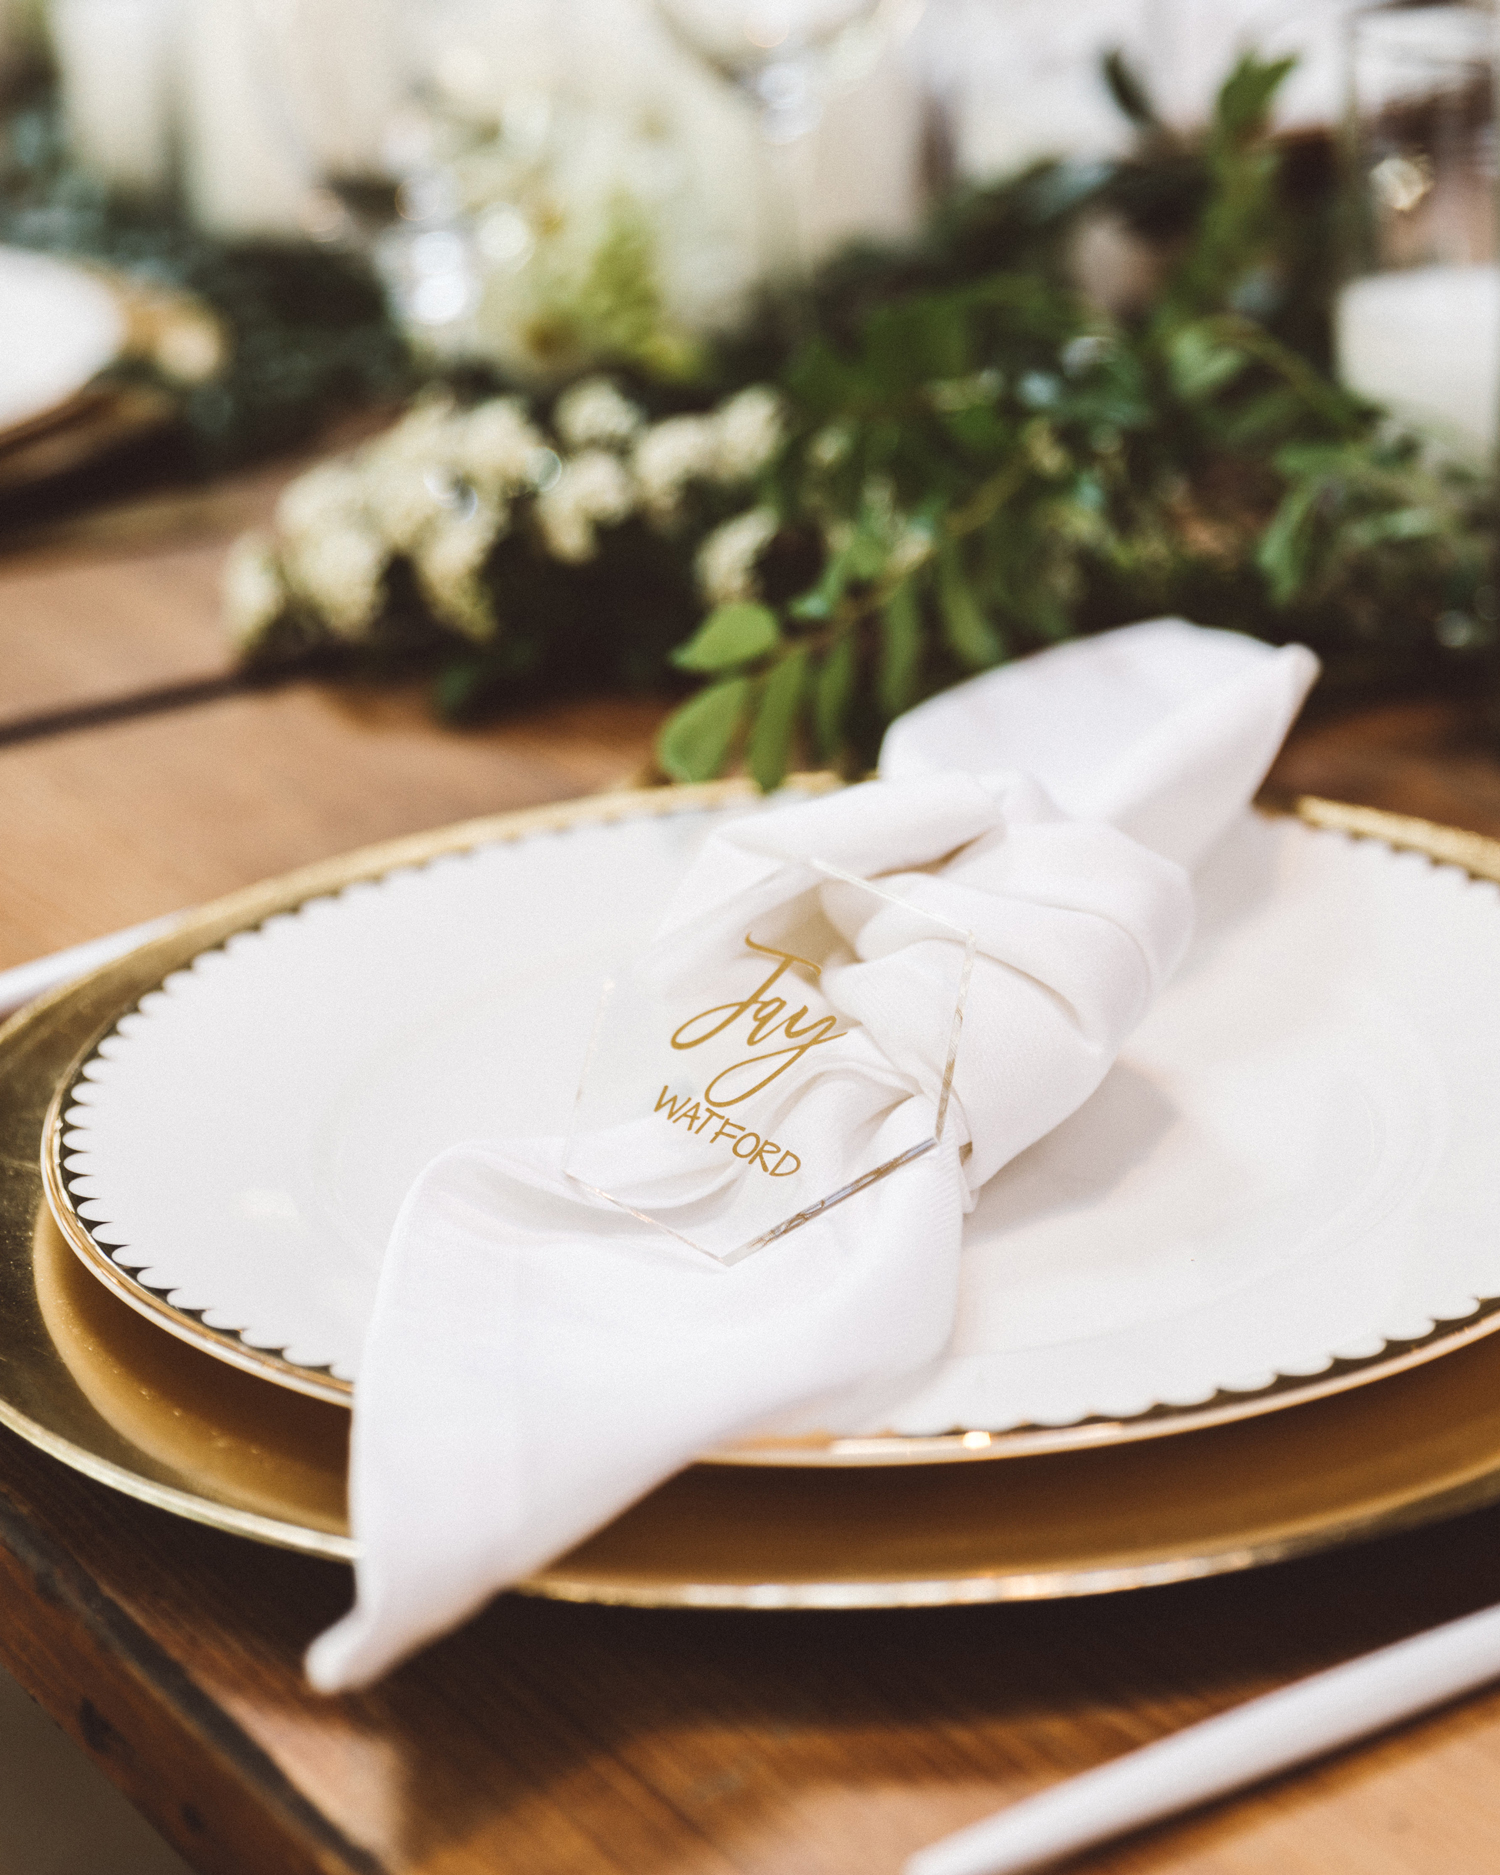 kaily matt wedding los angeles place setting with gold embellishments